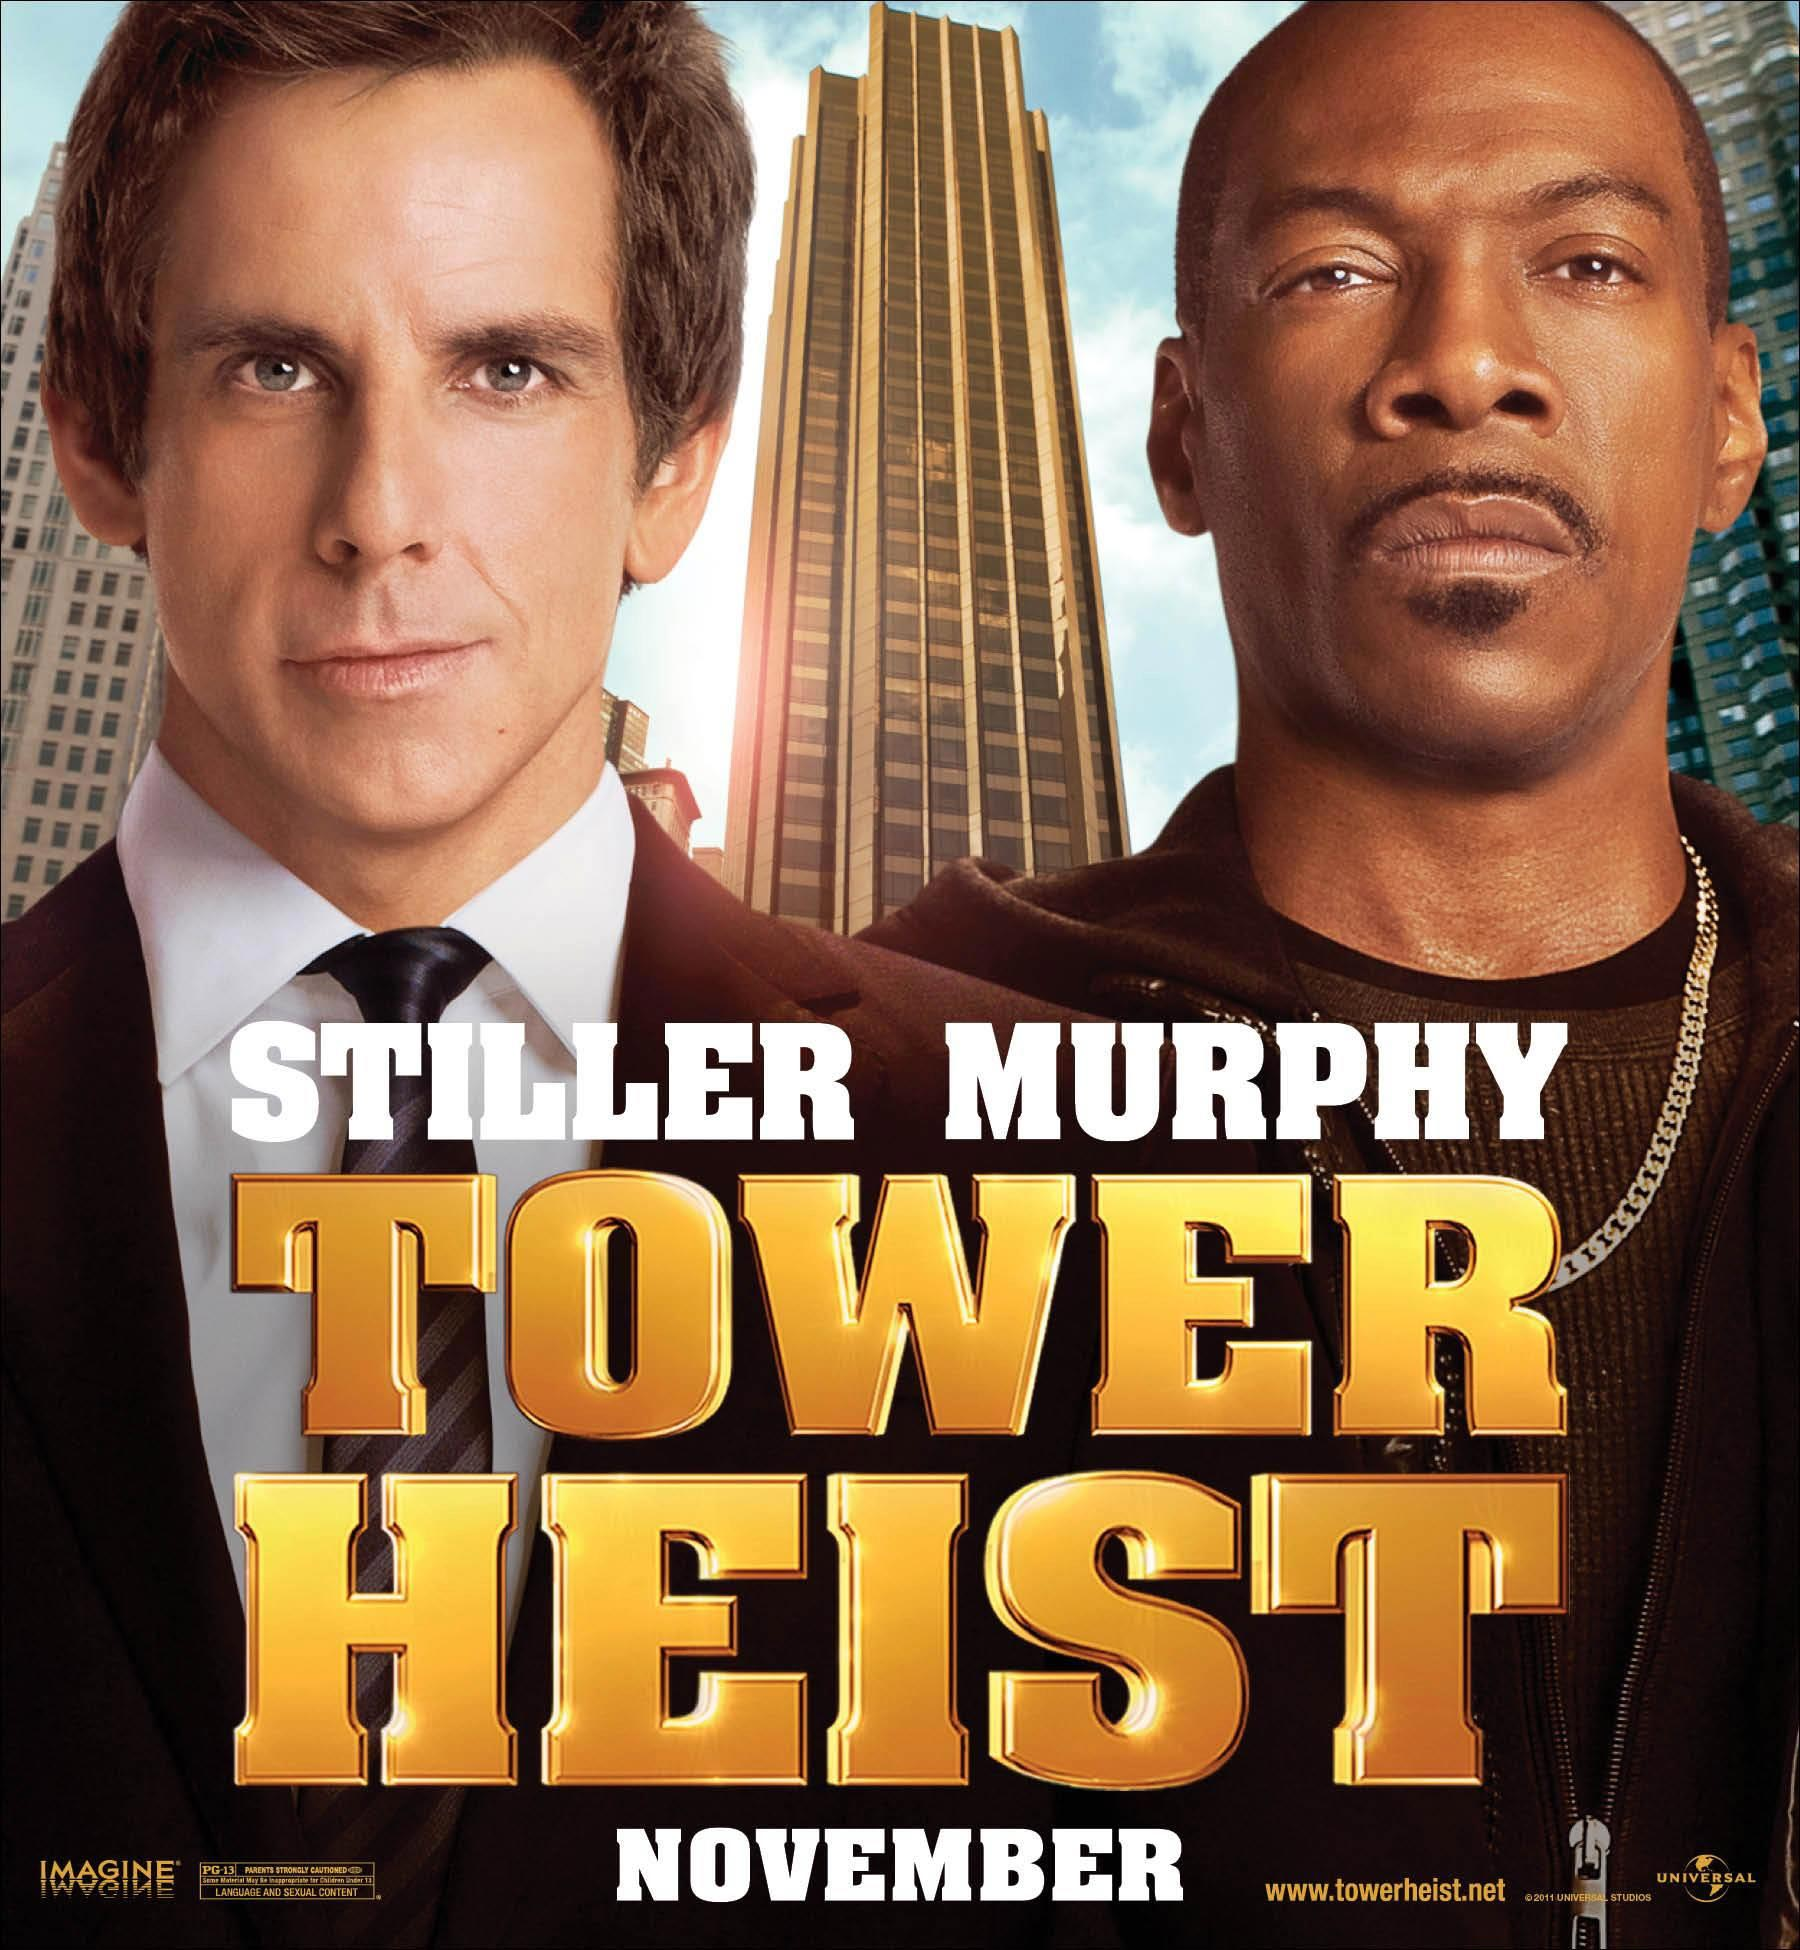 Bomb Shelter: Why Did Tower Heist Fail?